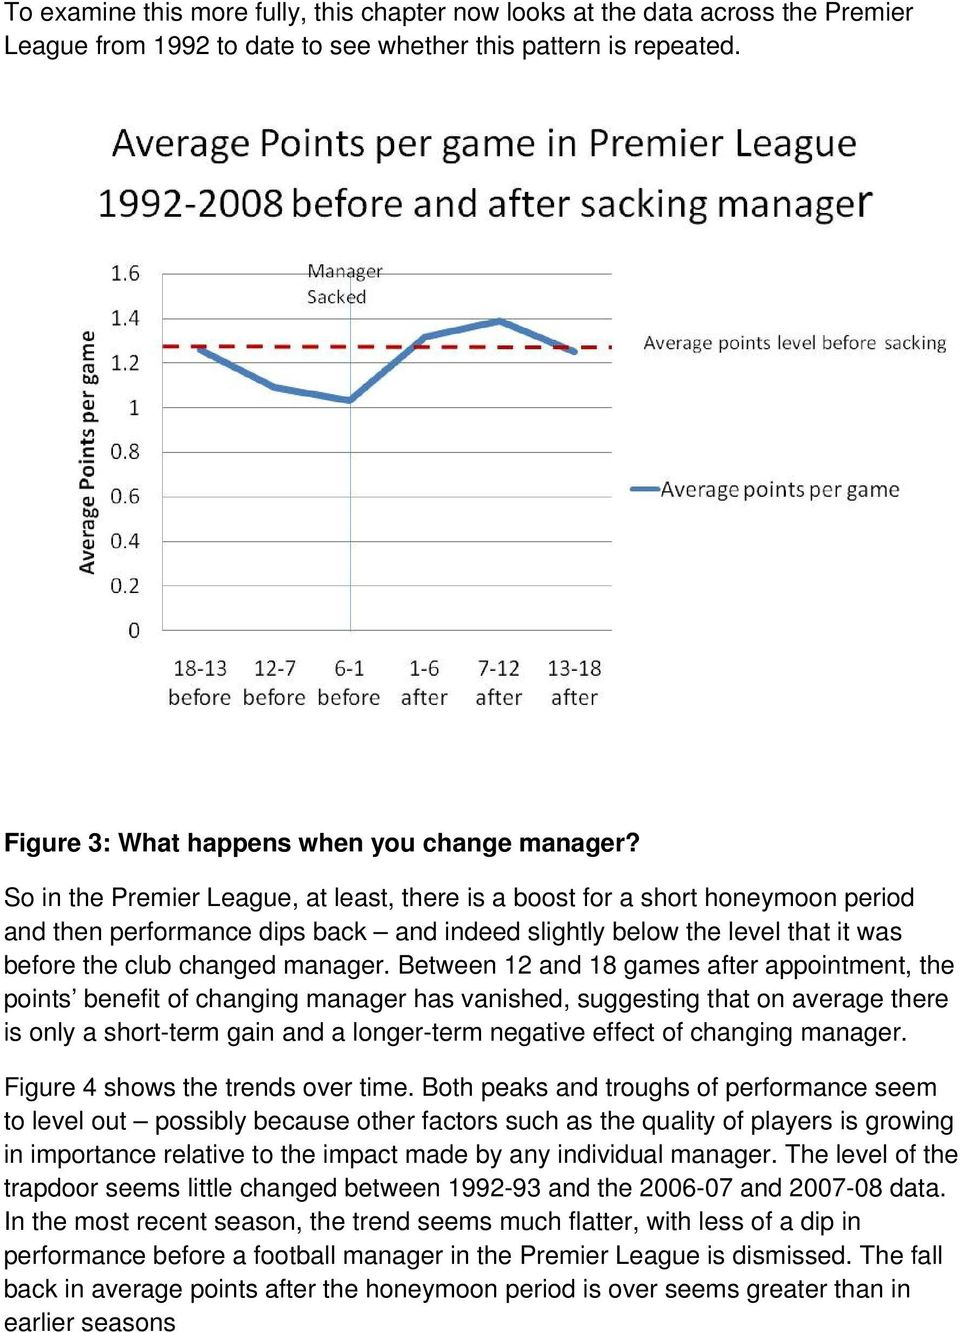 Between 12 and 18 games after appointment, the points benefit of changing manager has vanished, suggesting that on average there is only a short-term gain and a longer-term negative effect of